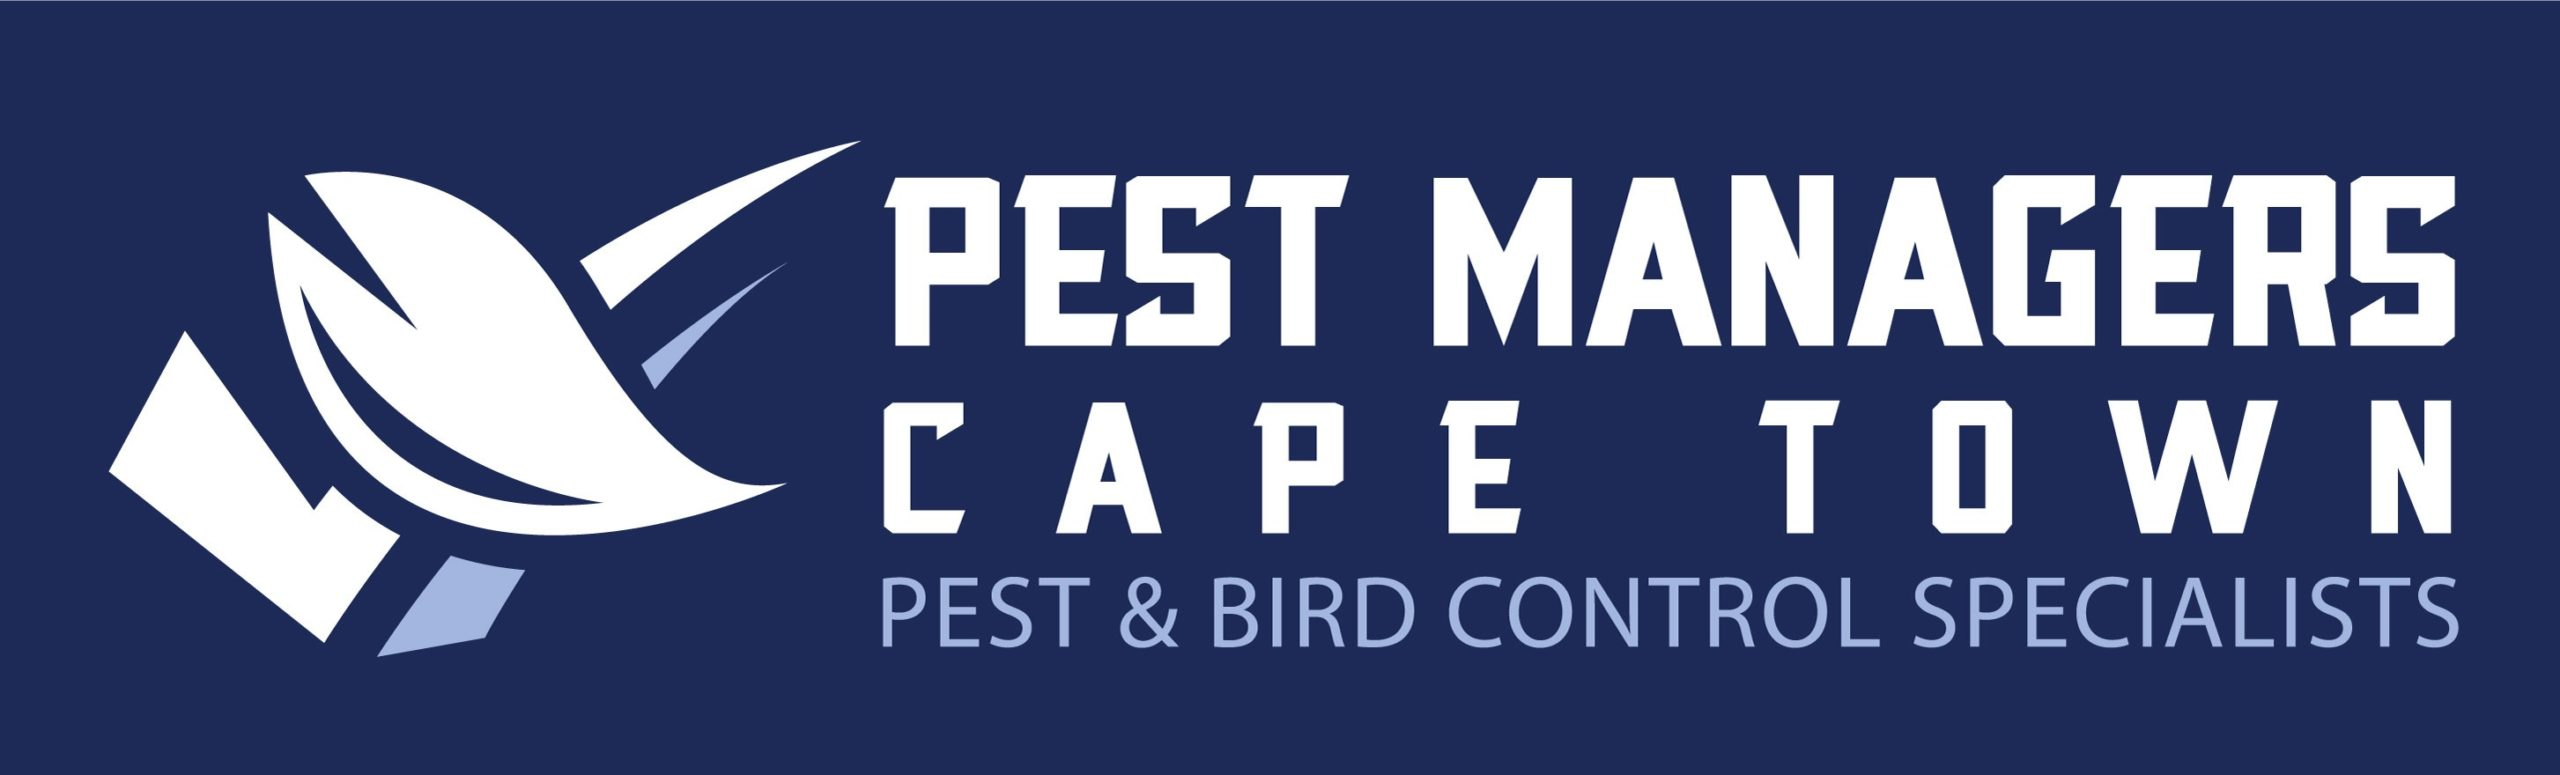 Pest Managers Cape Town